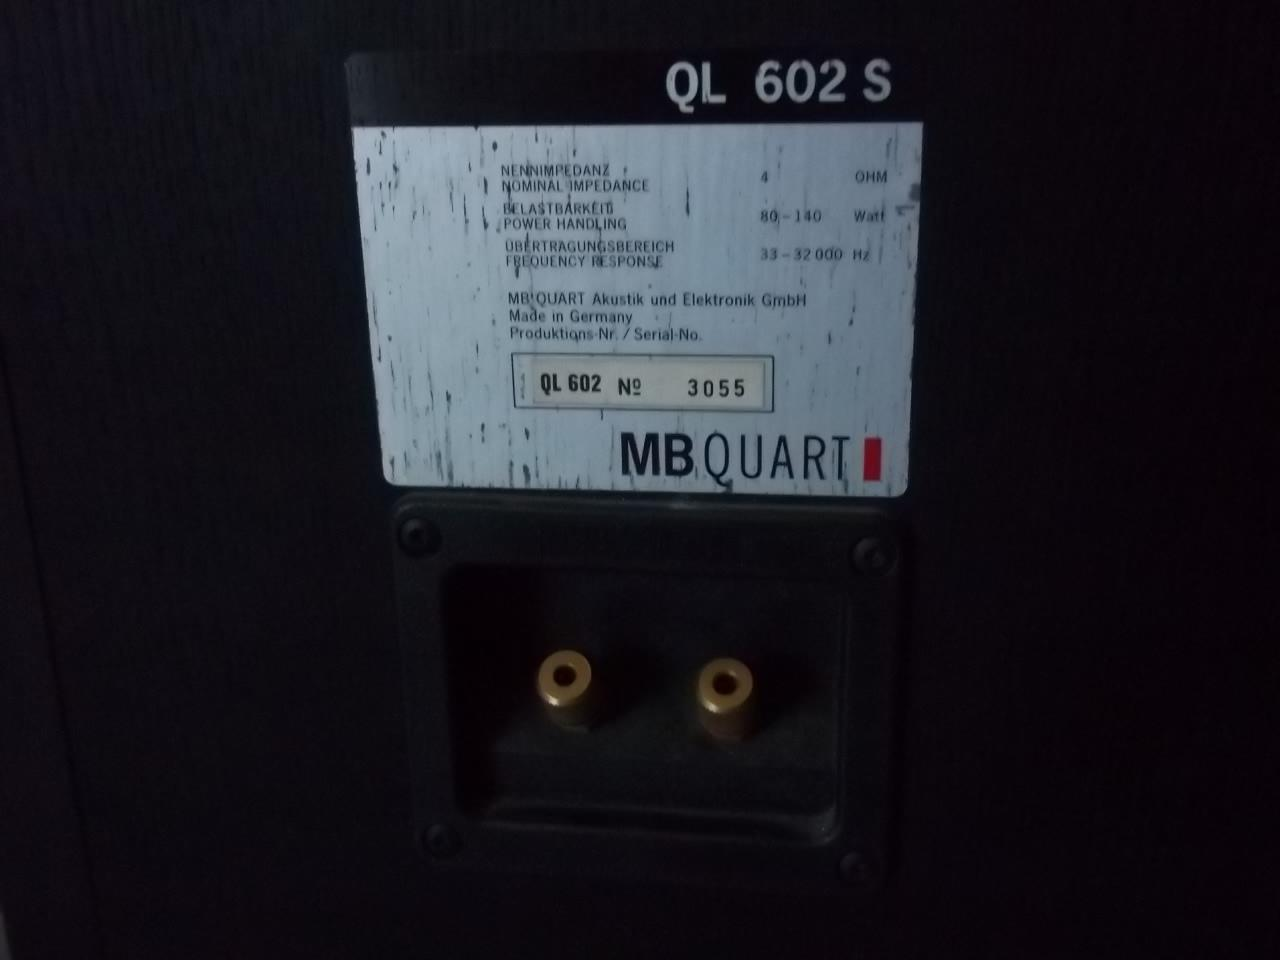 MB QUART QI 602 S made in GERMANY